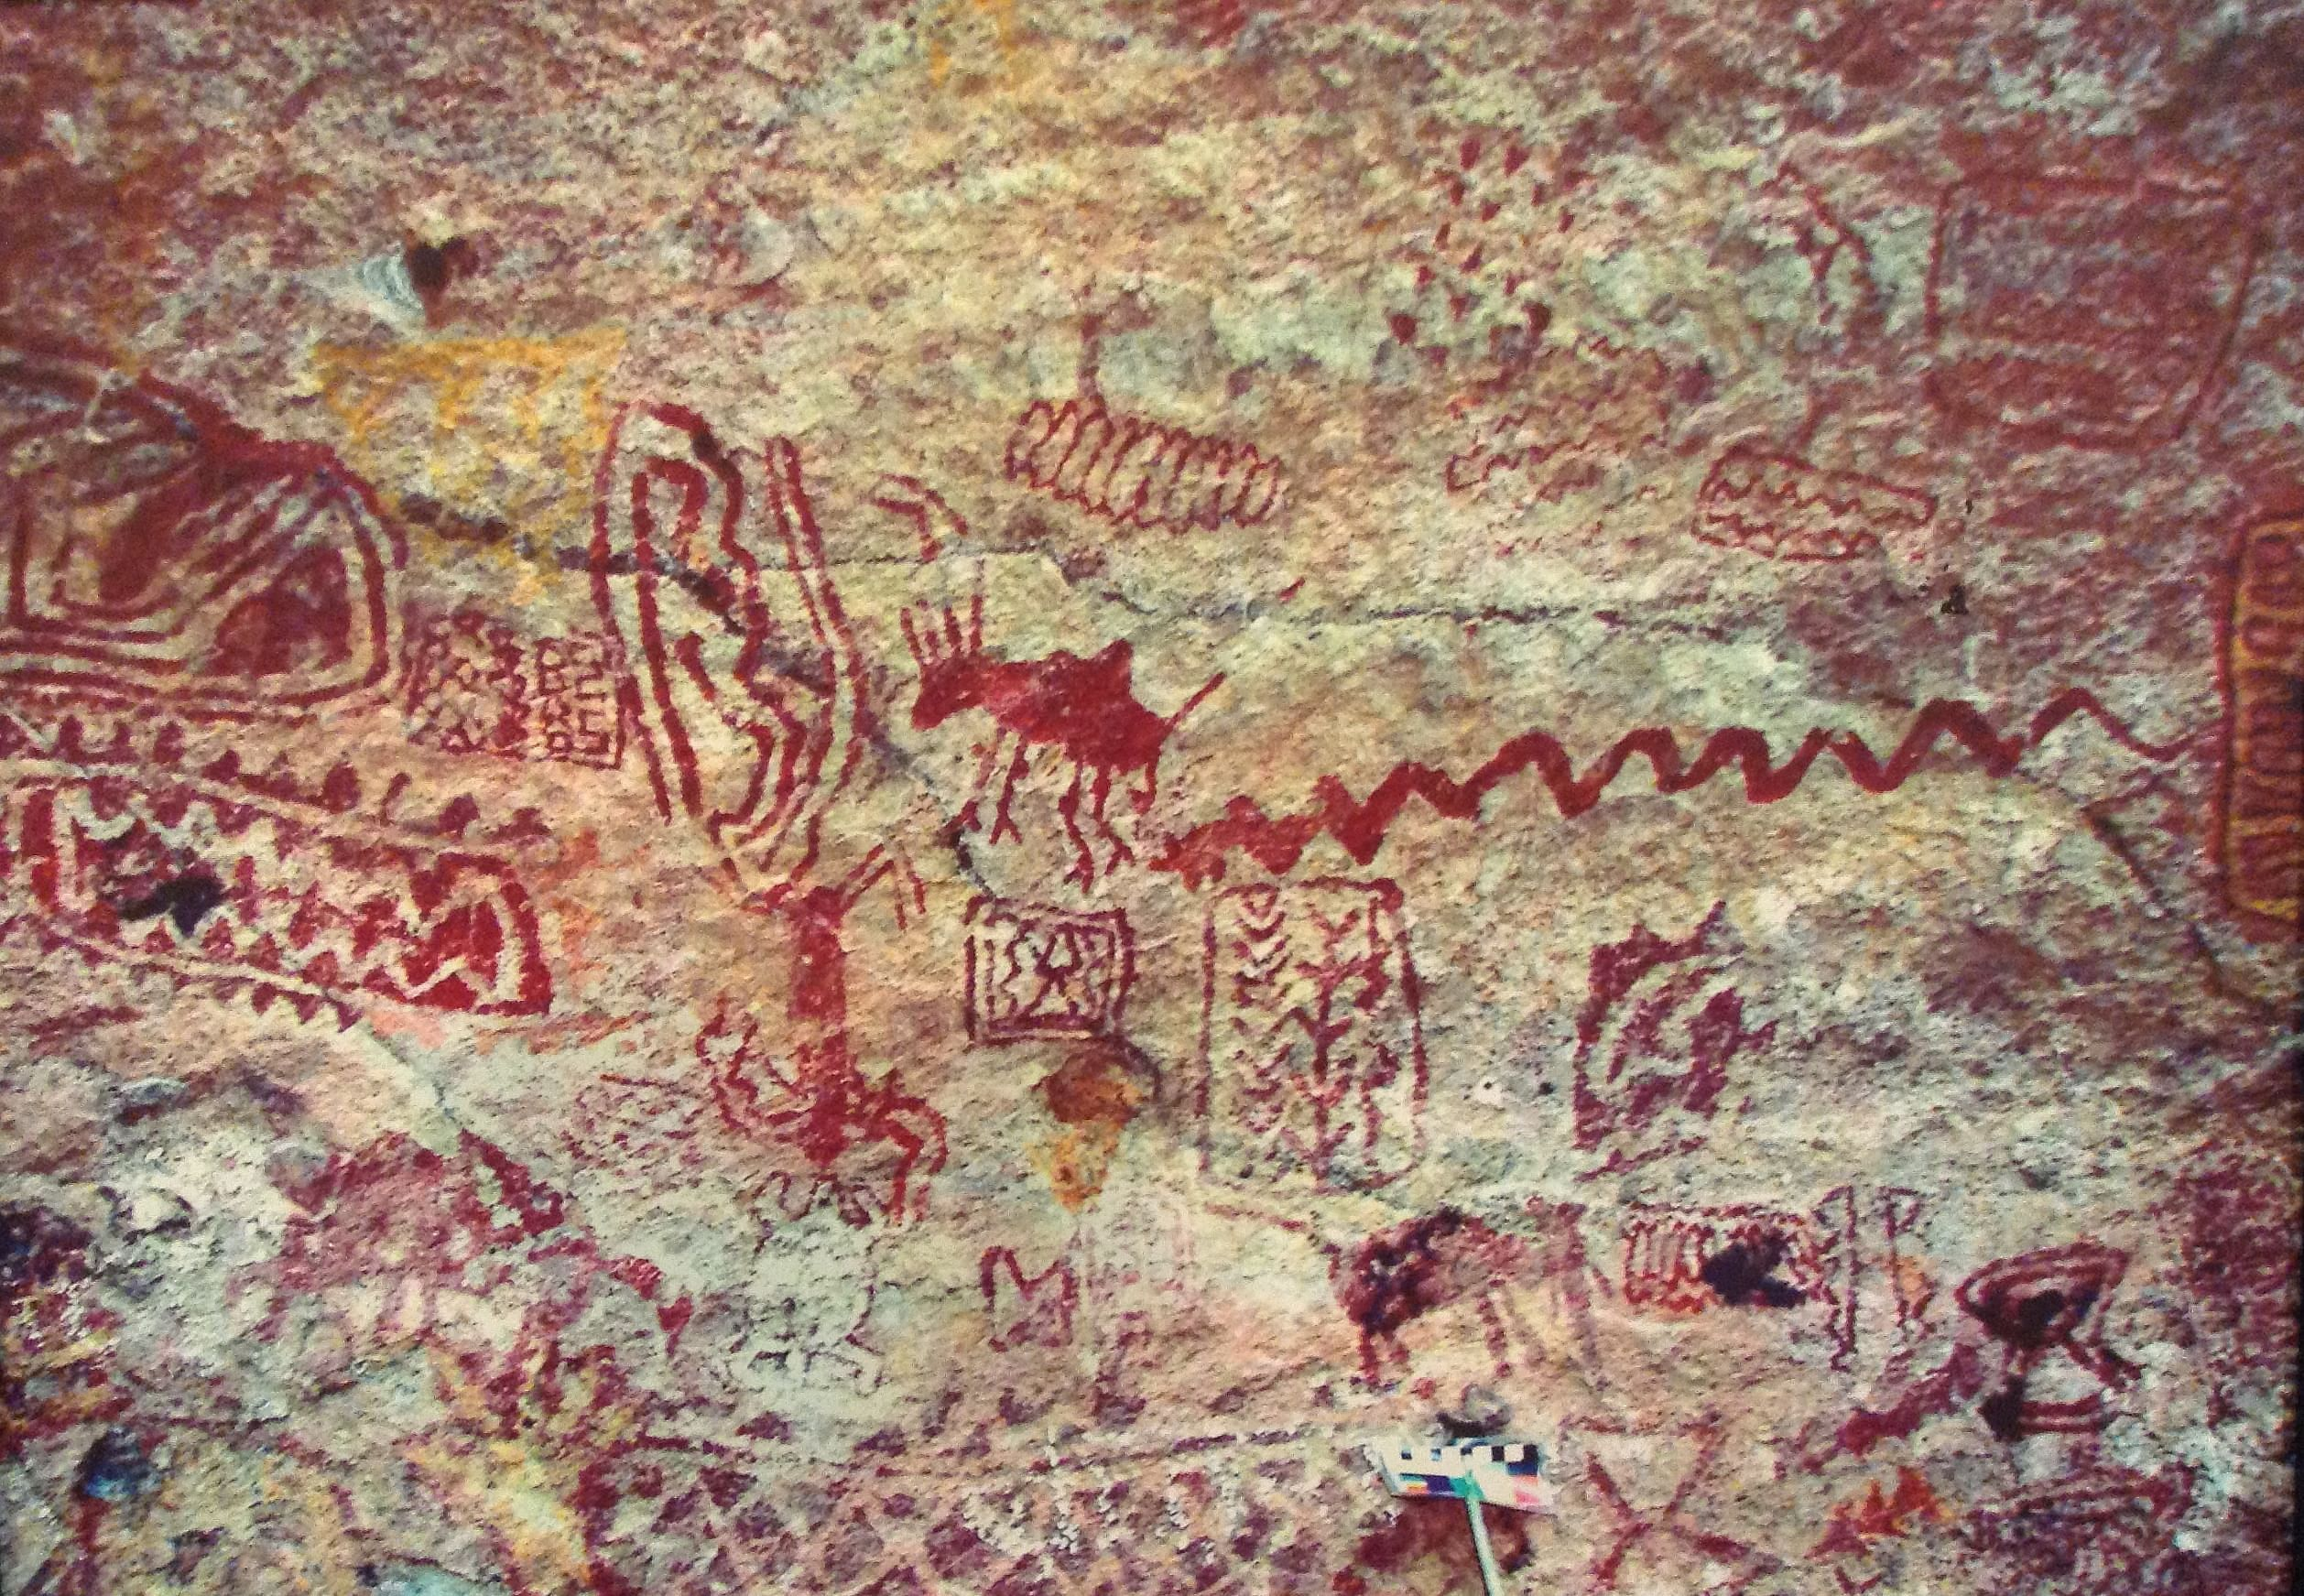 Rock art from Central India